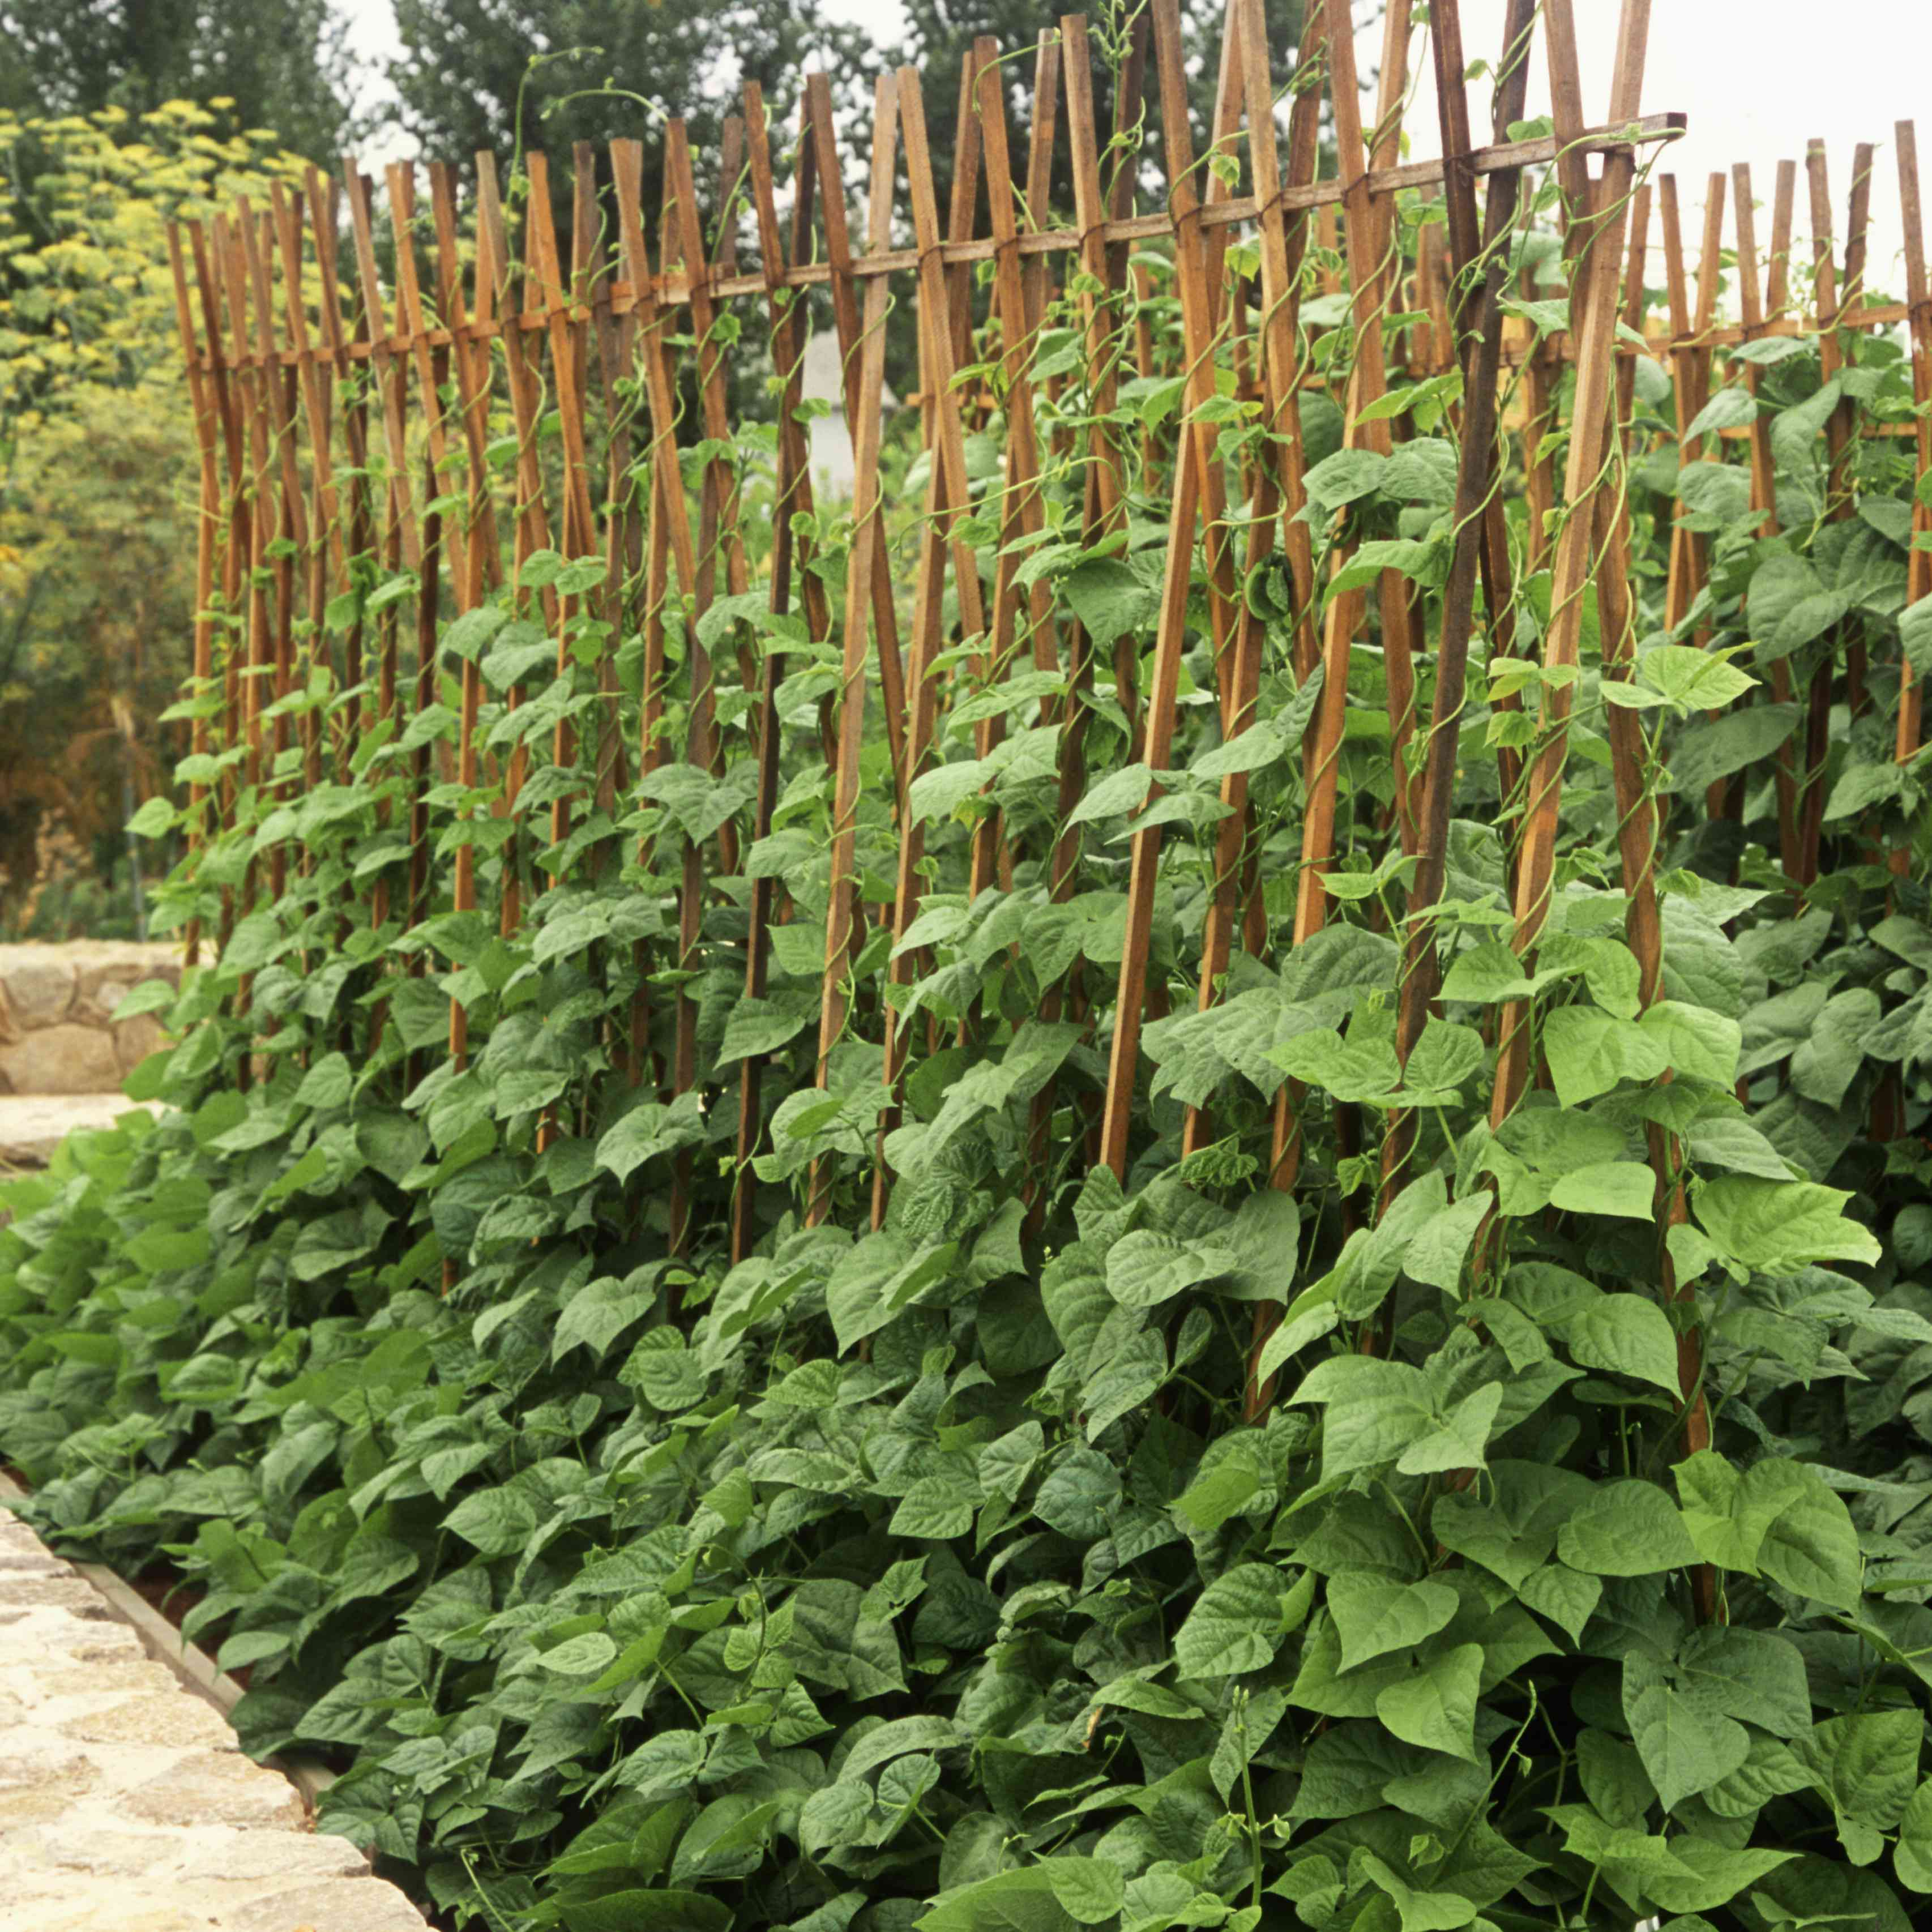 Pole beans in the garden